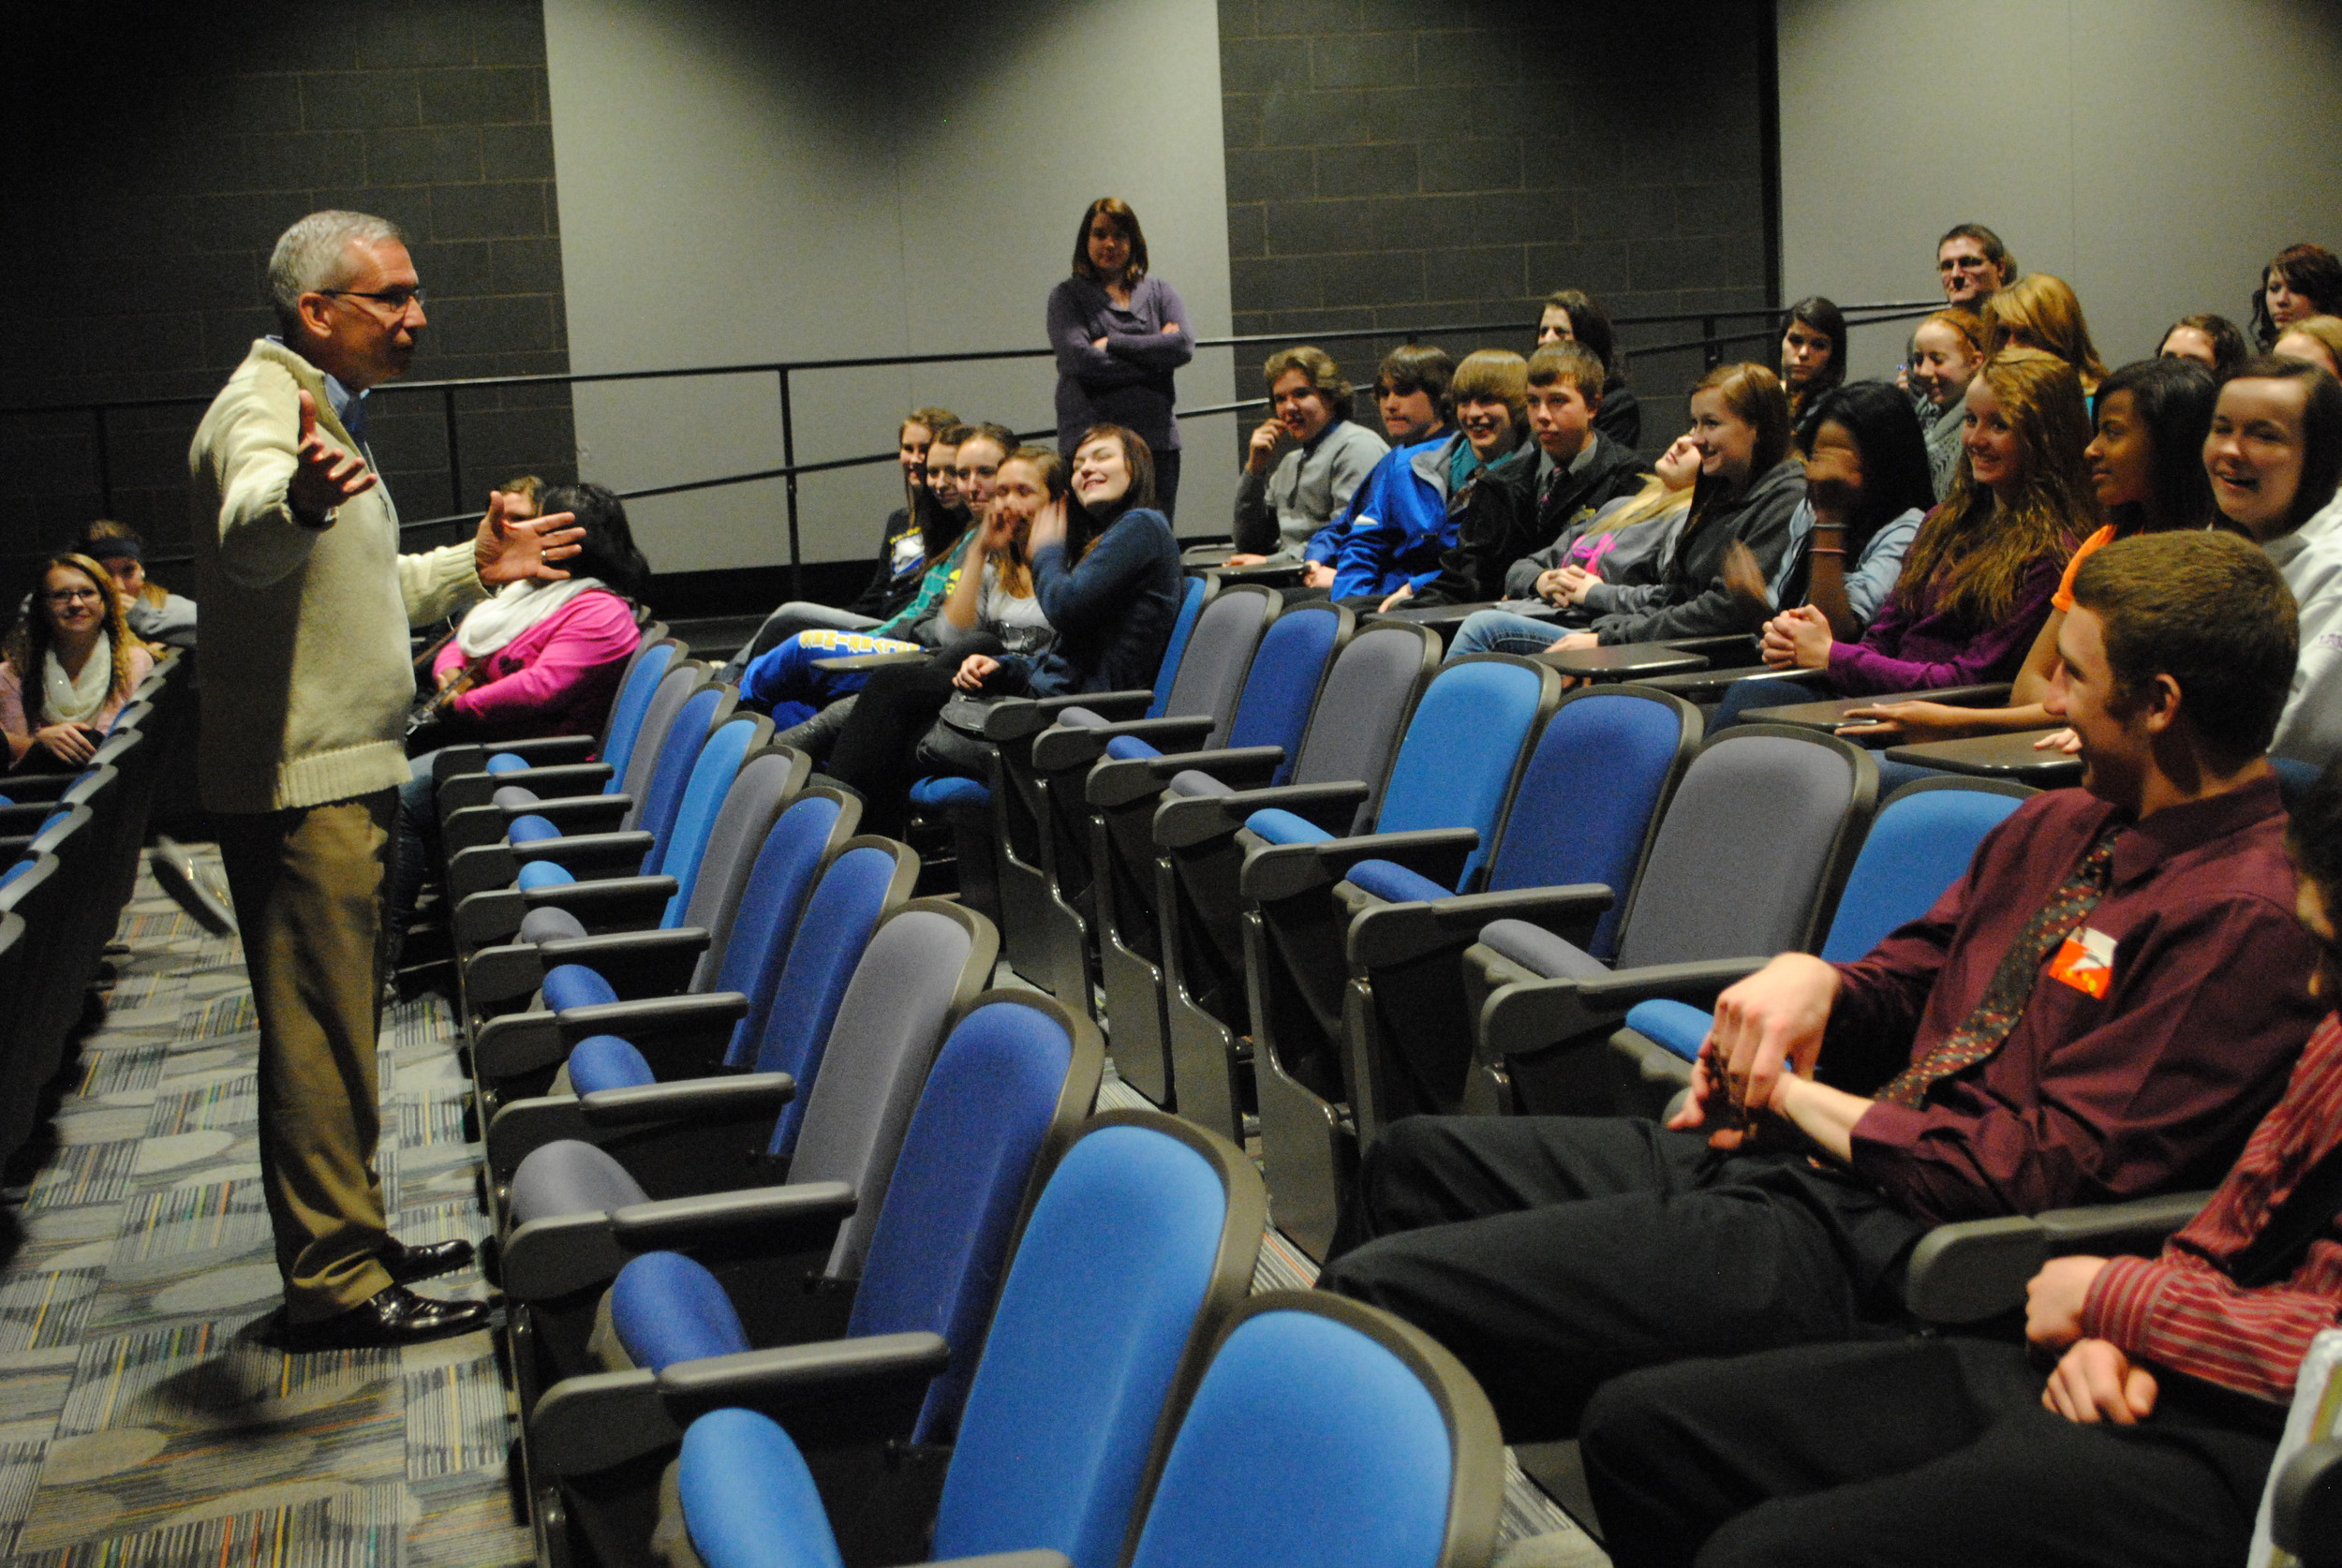 Wadena-Deer Creek High School sophomores listen to Craig Lindvahl give an engaging and at times, humorous presentation on the CEO program Thursday in the Robertson Theatre. (Photo by Dana Pavek, WDC Schools)